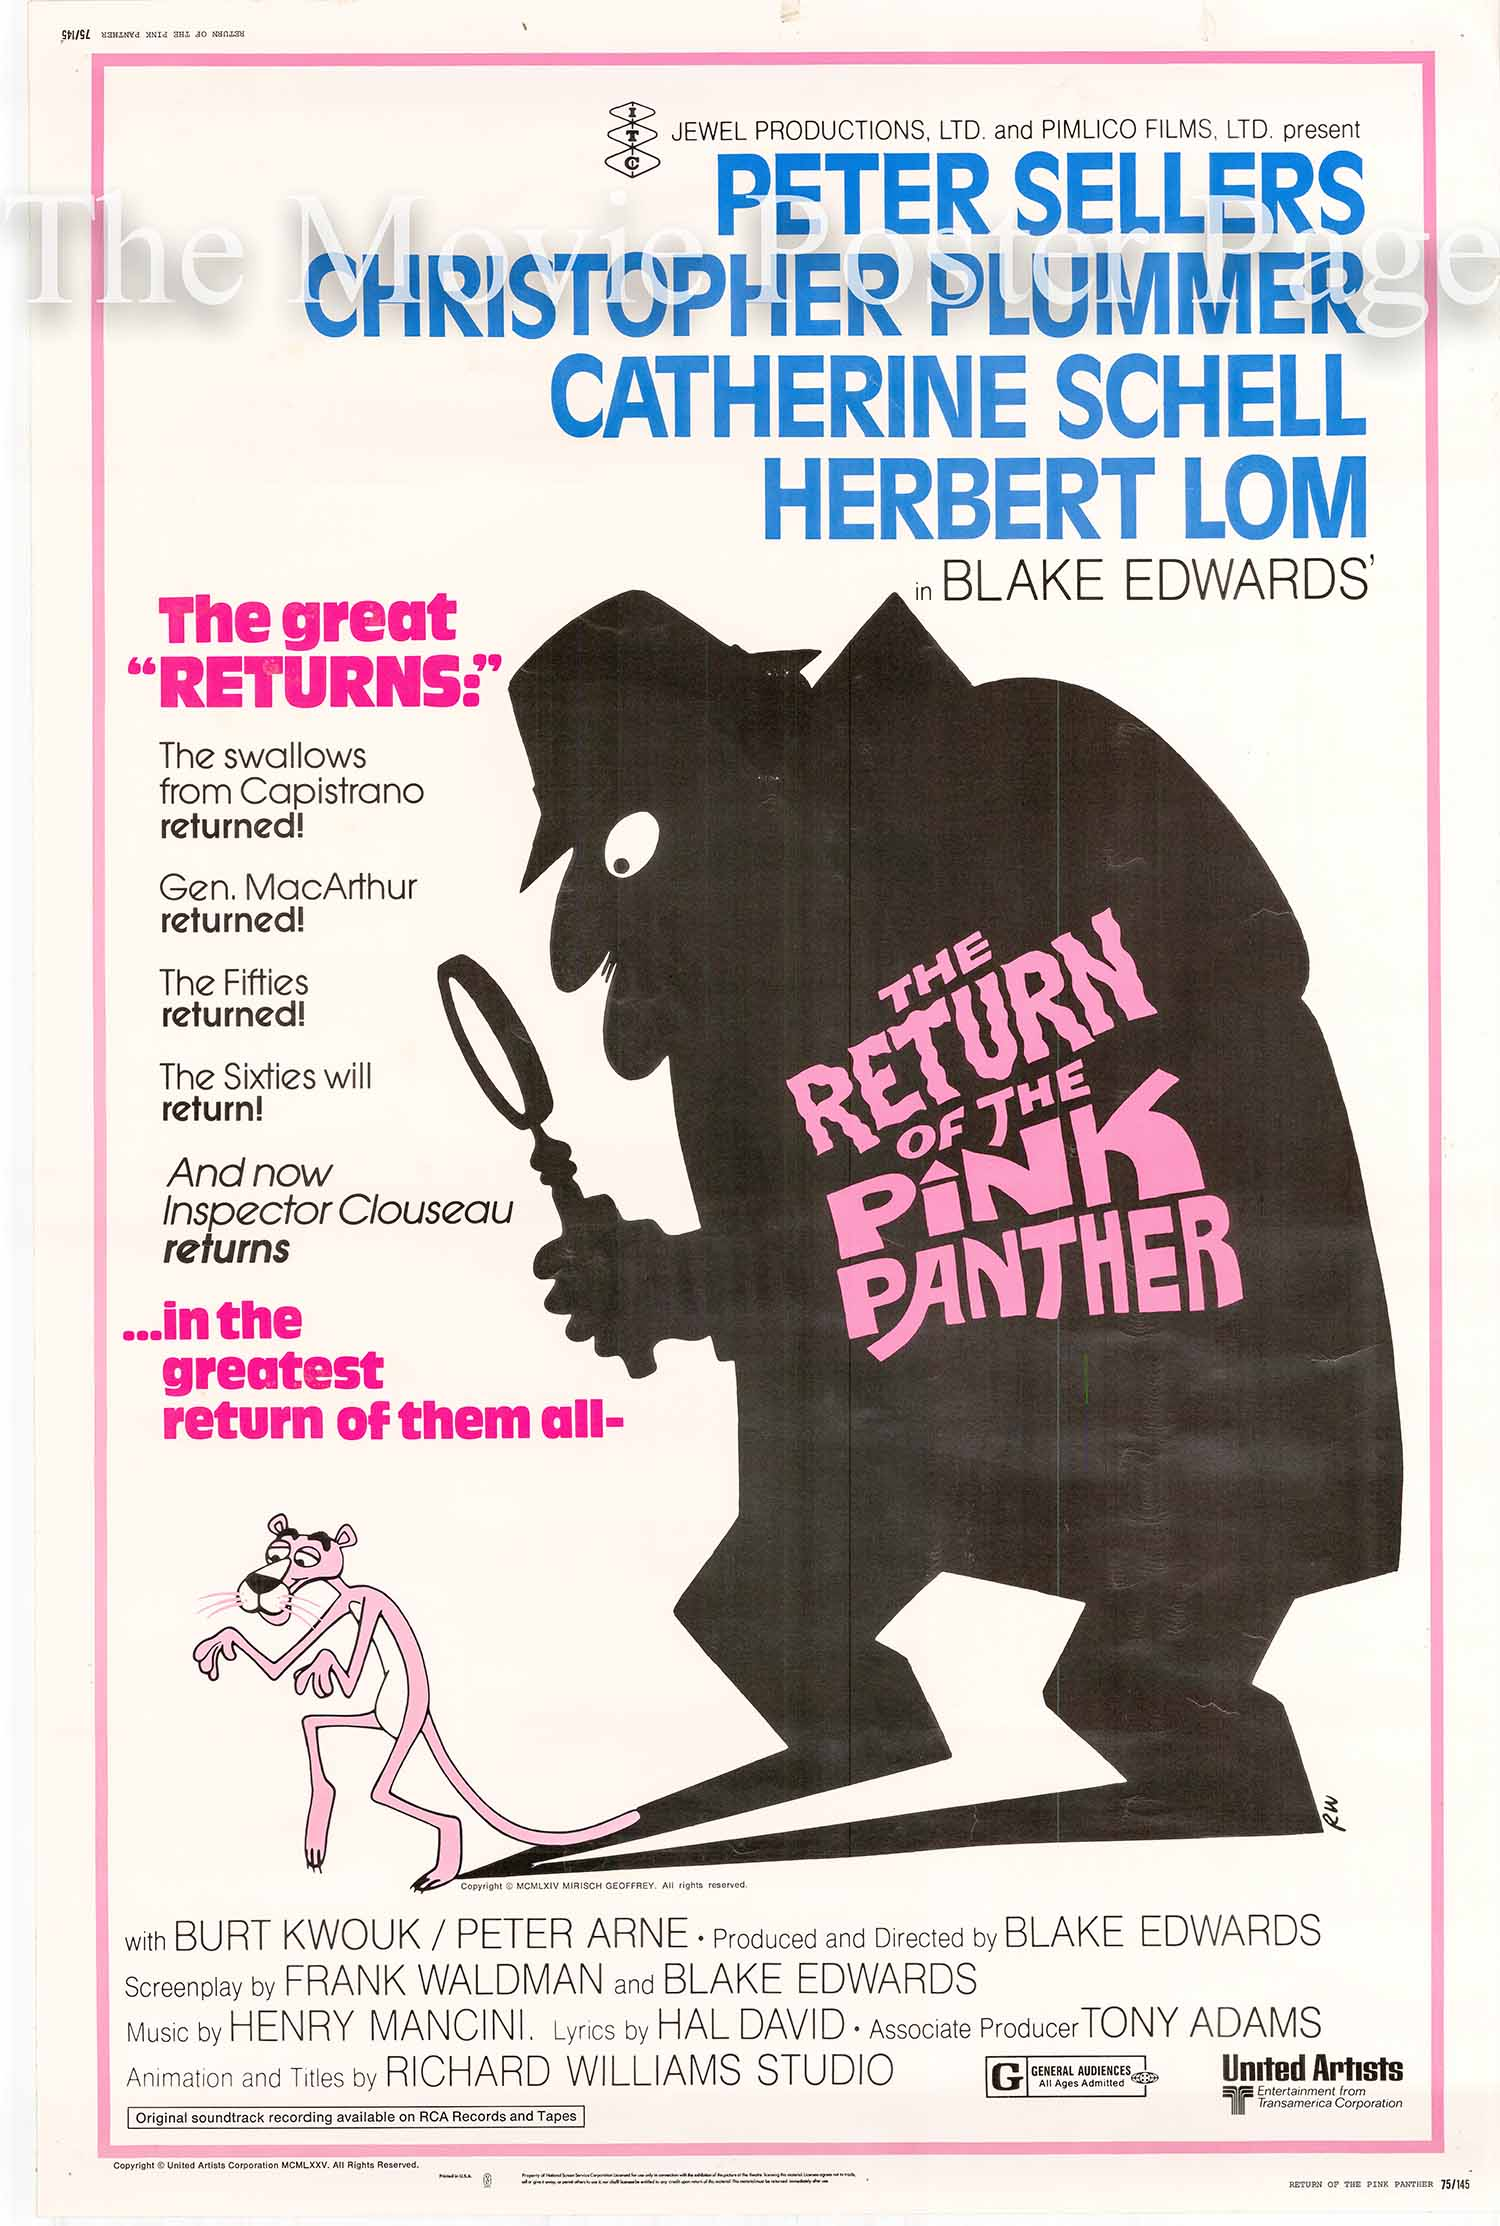 Pictured is a US 40x60 promotional poster for the 1975 Blake Edwards film The Return of the Pink Panther starring Peter Sellers.